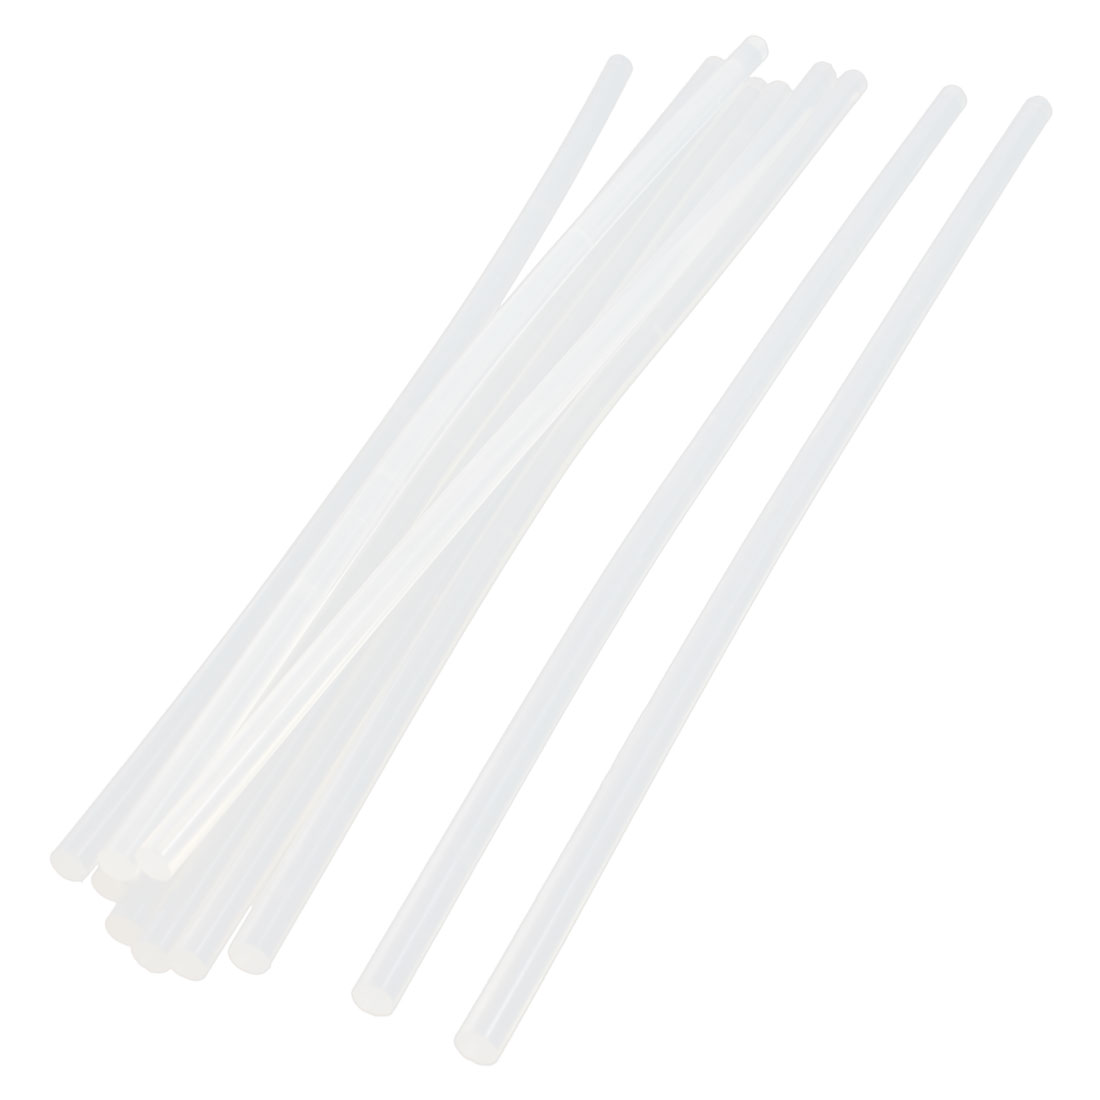 10pcs Spare Parts Adhesive Hot Melt Glue Sticks 7x300mm for Electric Glue Gun